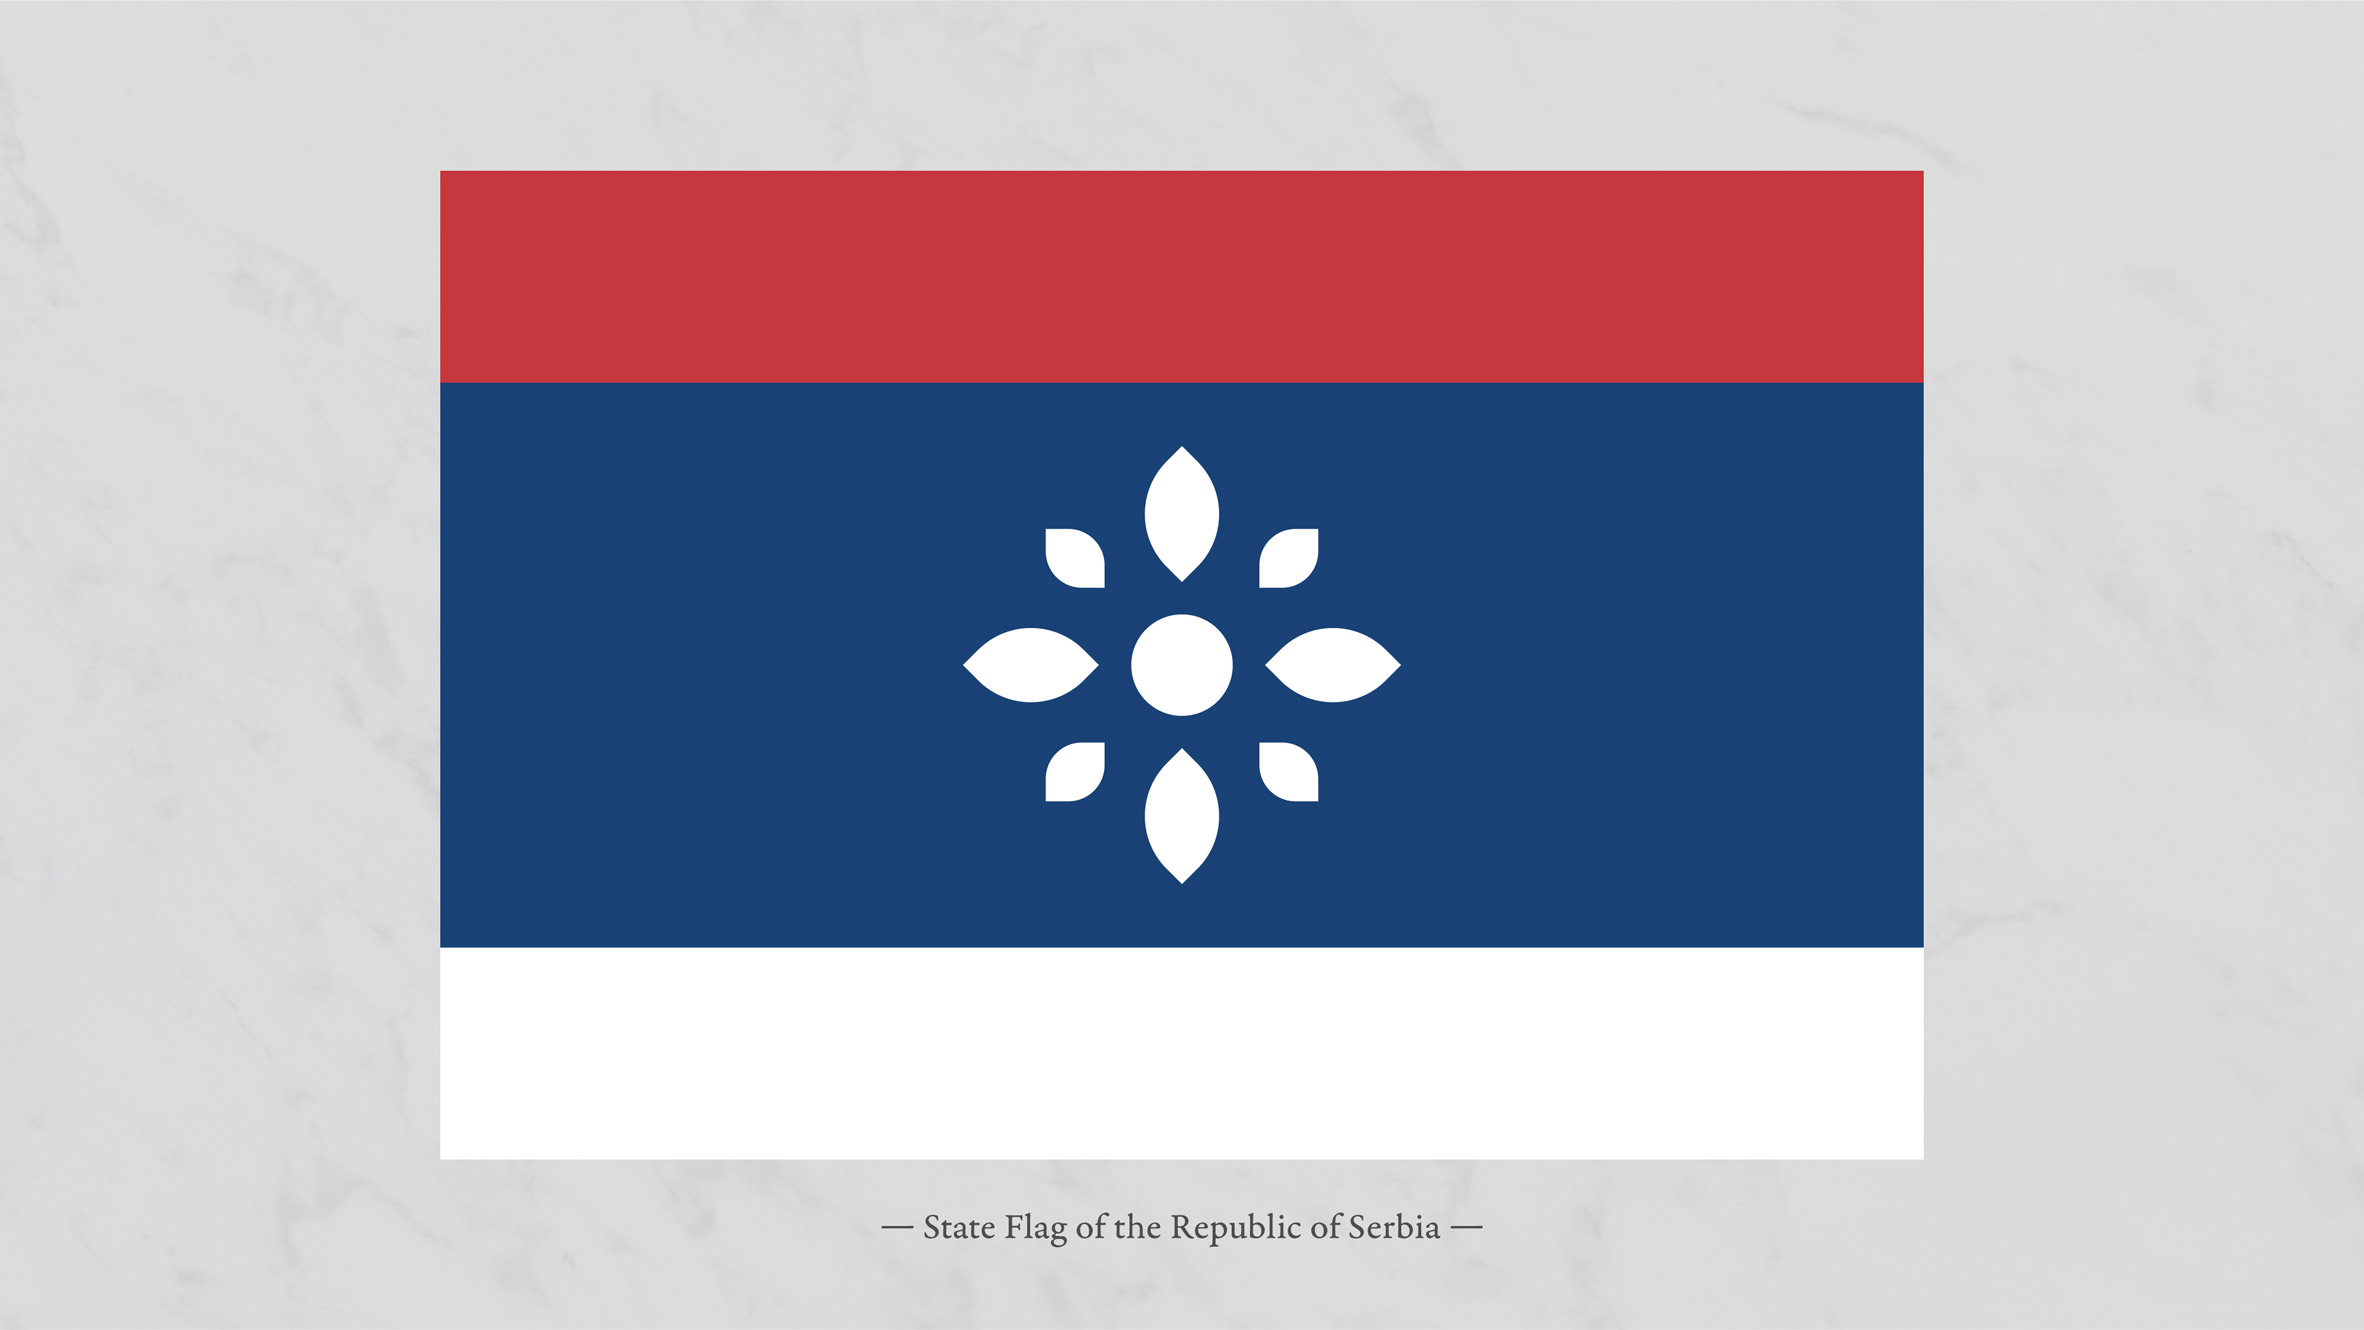 Vladan Pavlović gives Serbia a minimal rebrand that emphasises peace and tolerance